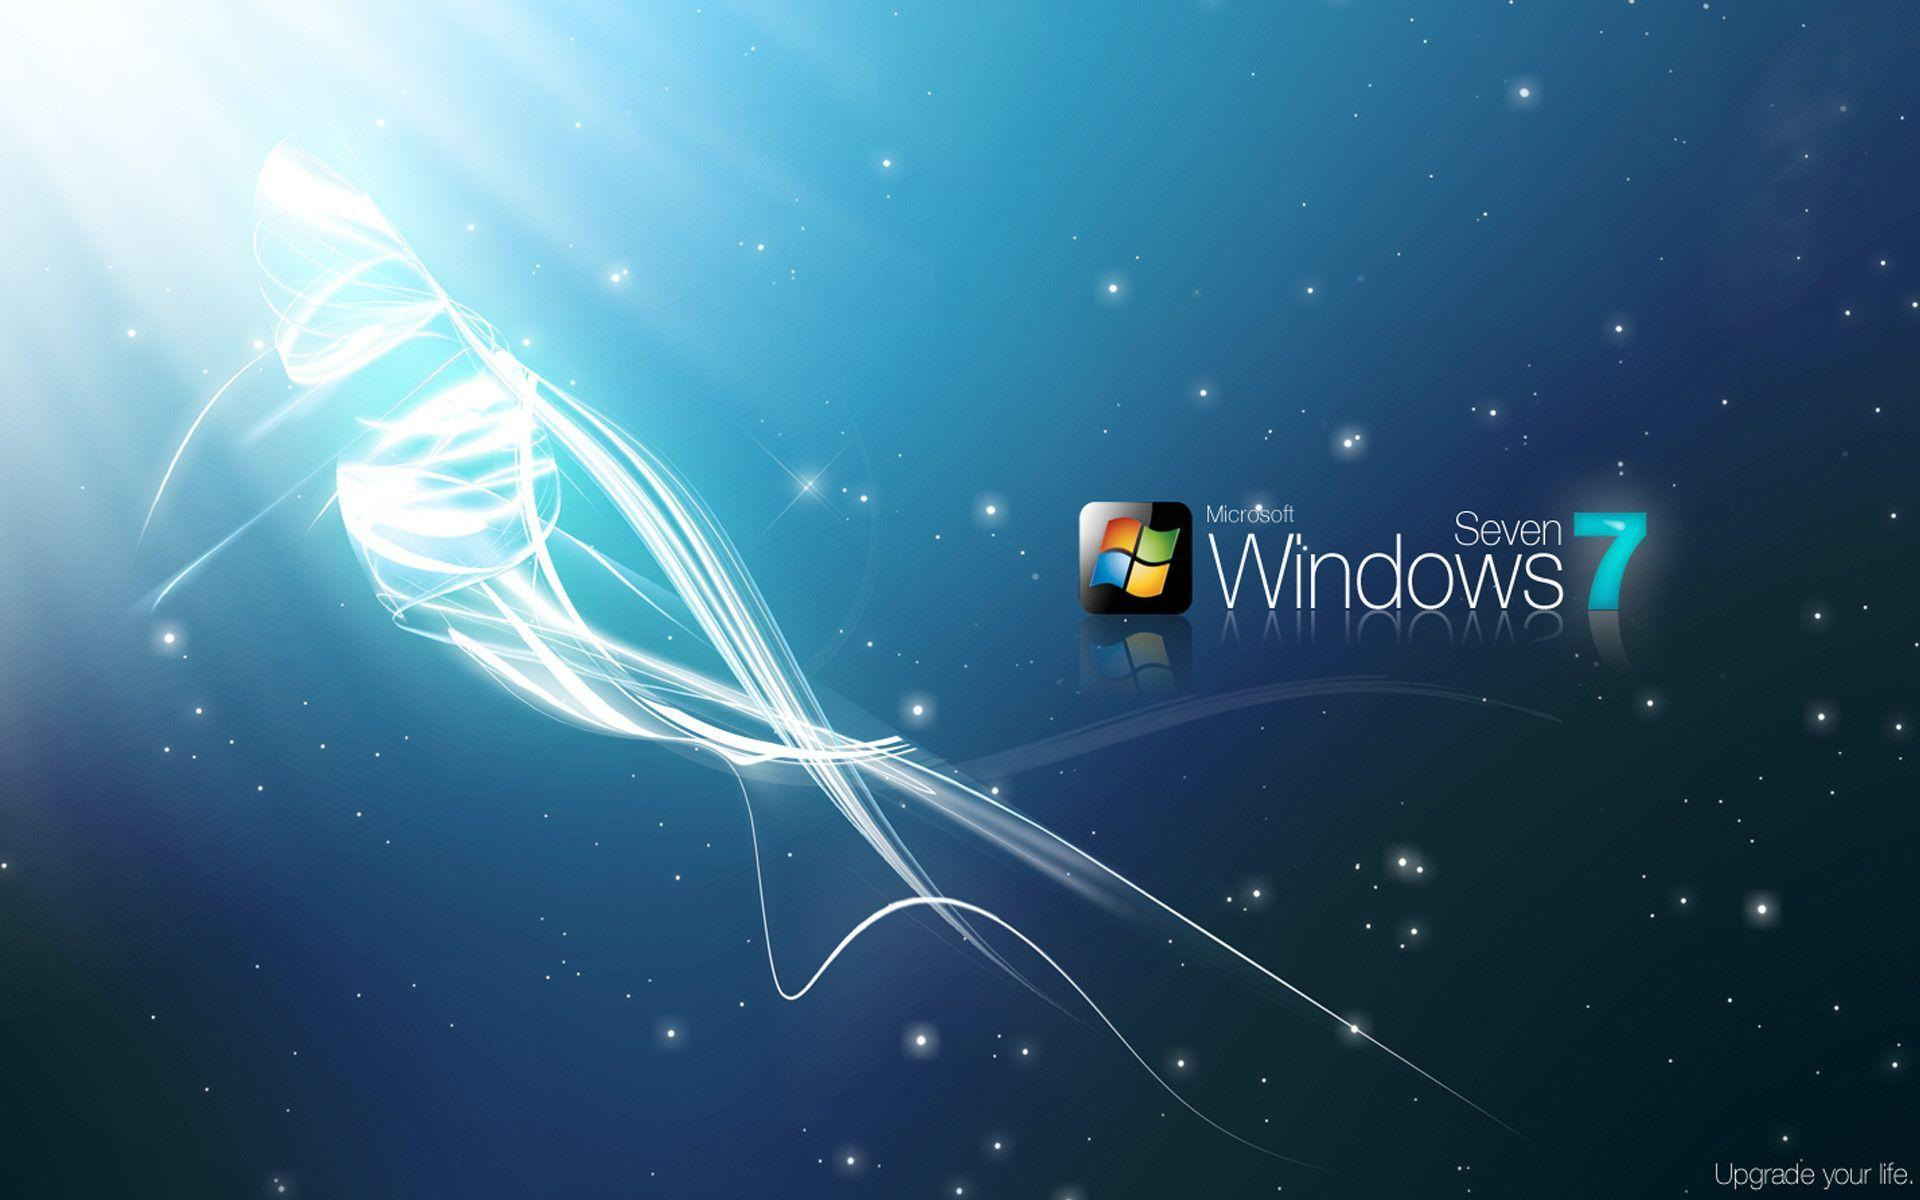 Windows7 Ultimate Wallpapers - Full HD wallpaper search